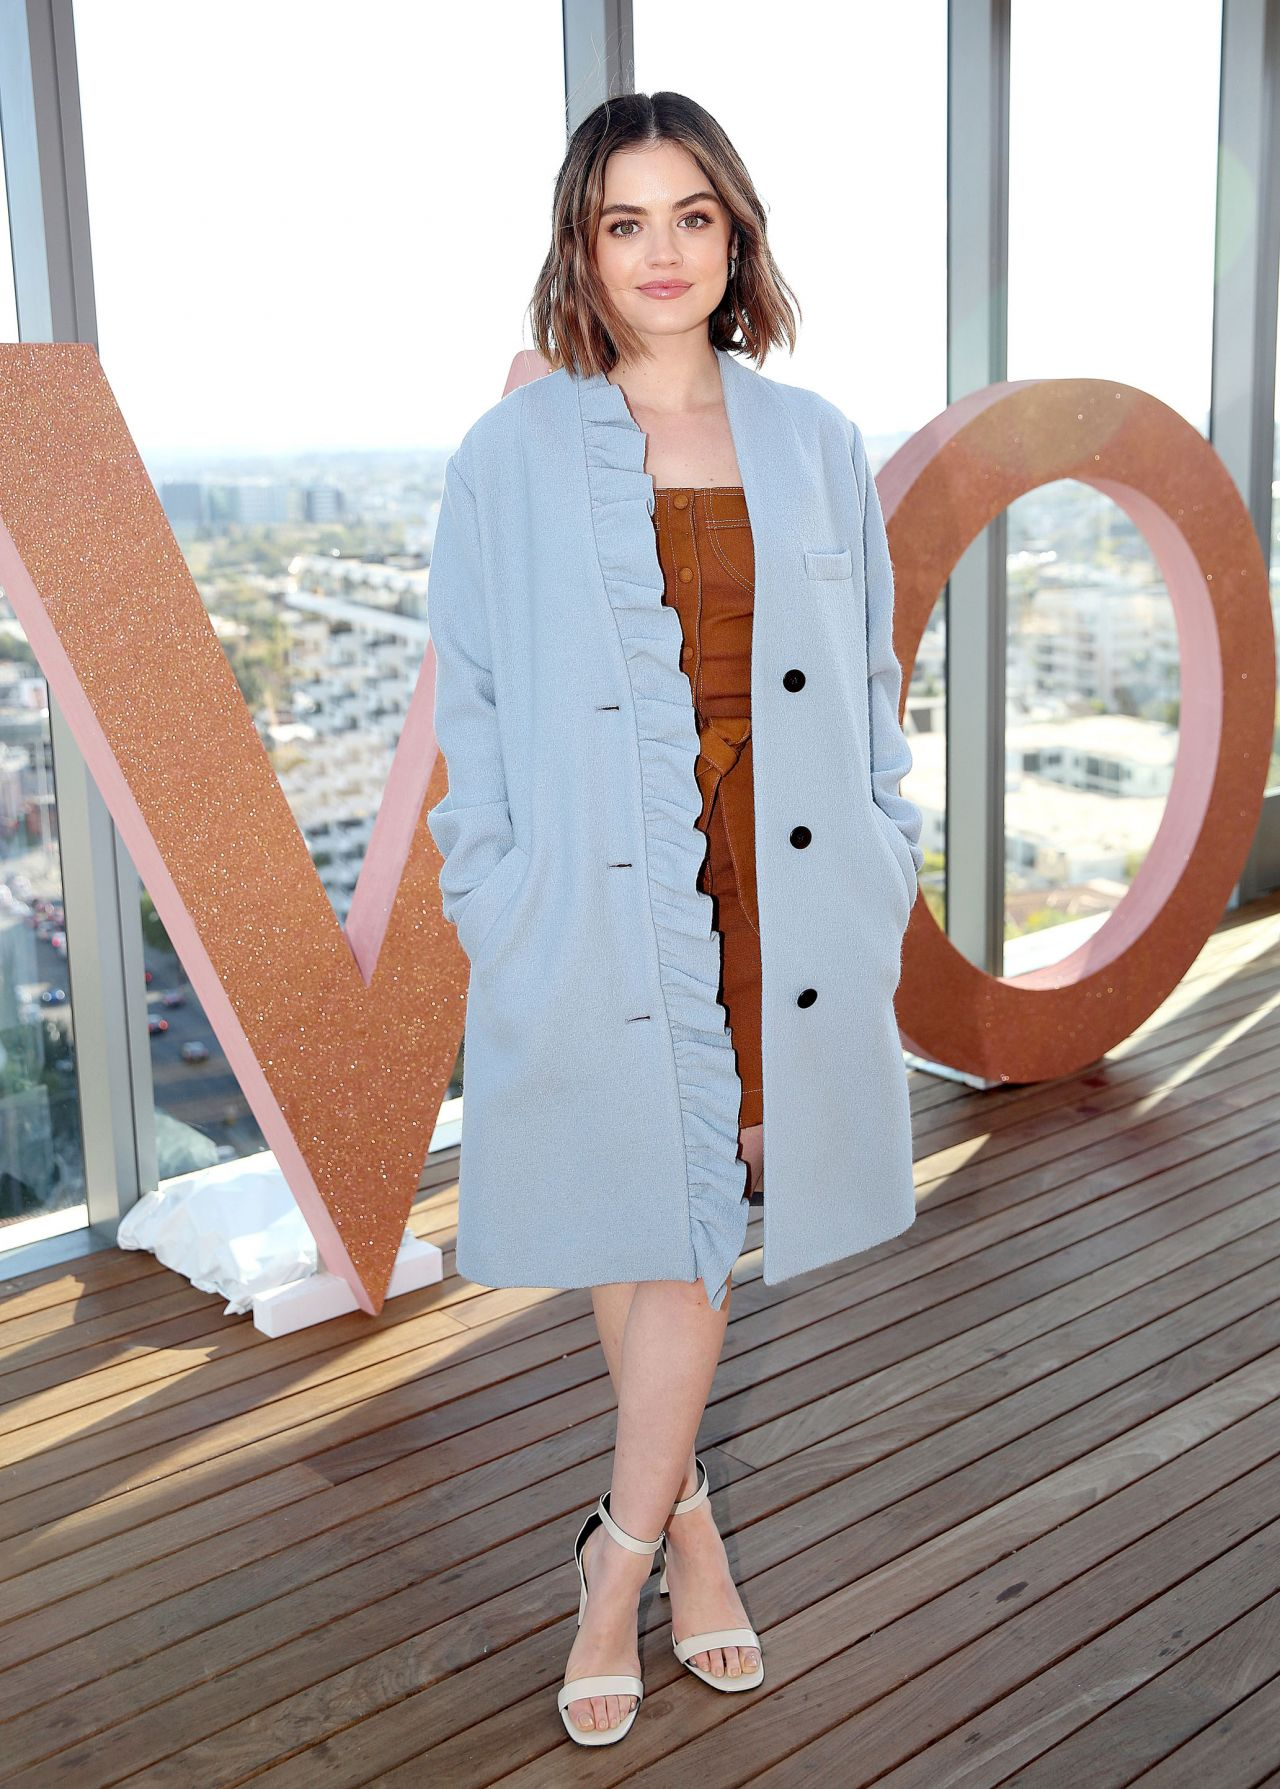 http://celebmafia.com/wp-content/uploads/2018/02/lucy-hale-avon-new-glow-collection-launch-in-la-9.jpg